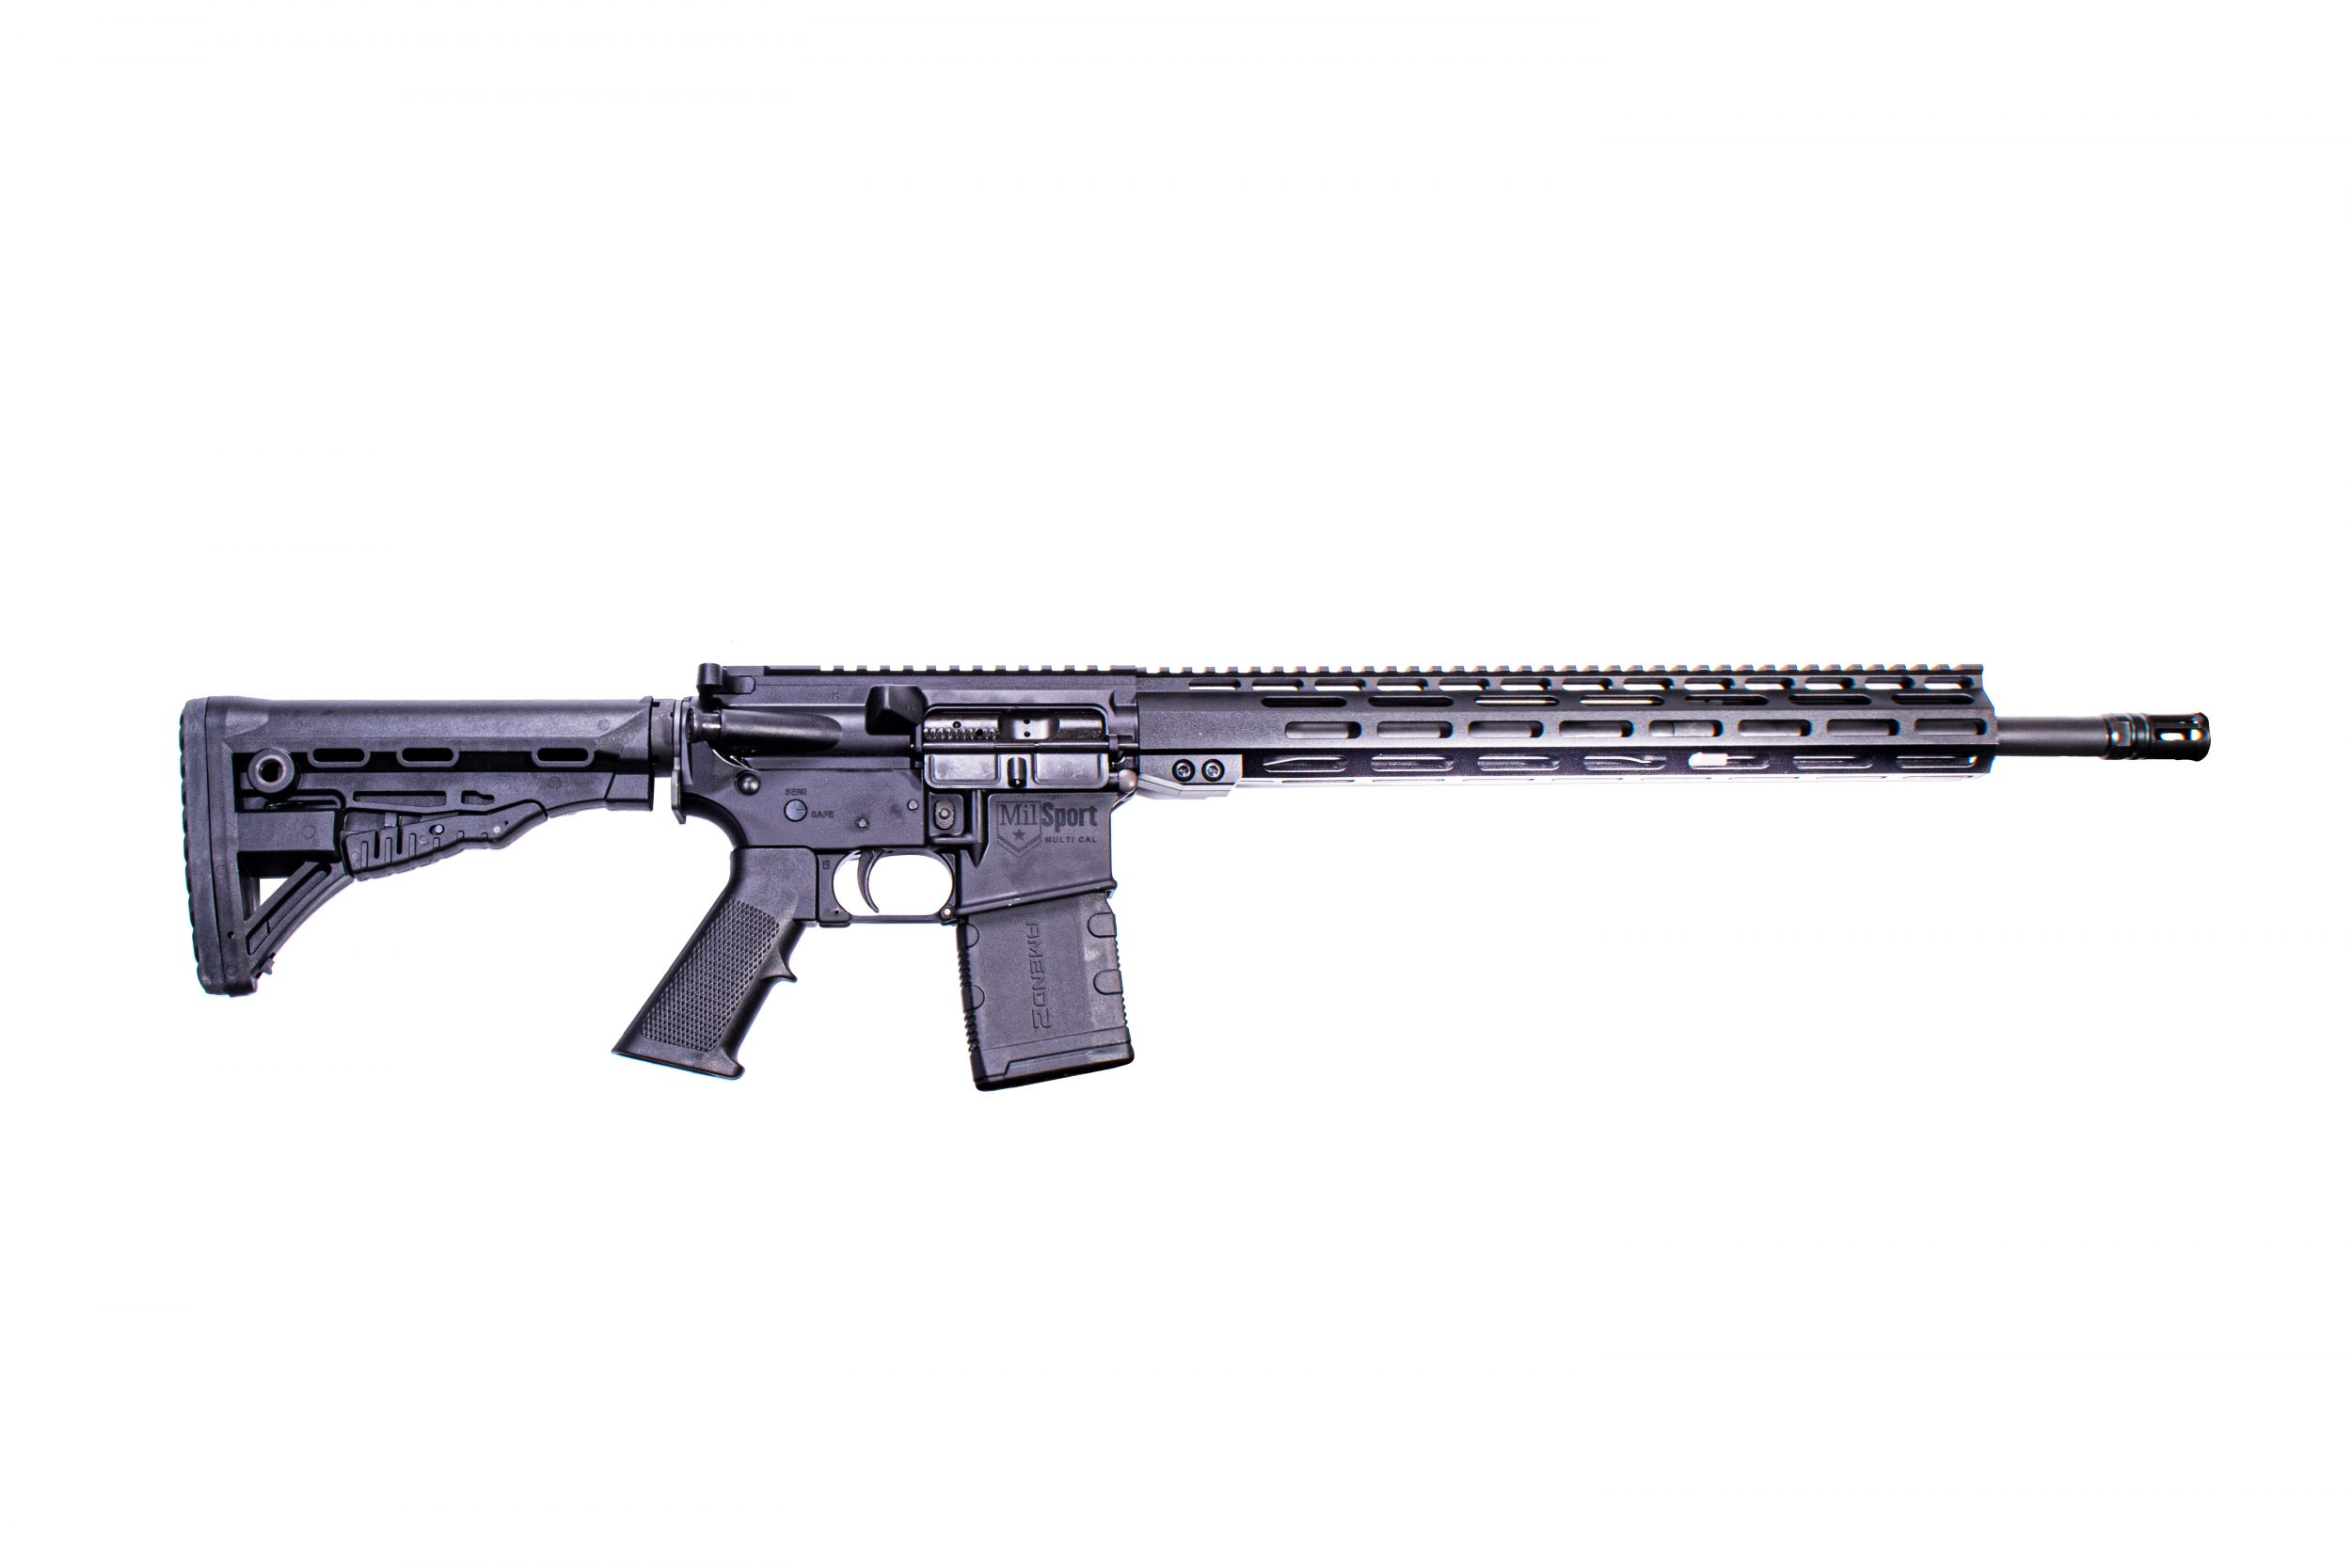 American Tactical, Inc. Introduces Two 6mm ARC Rifles